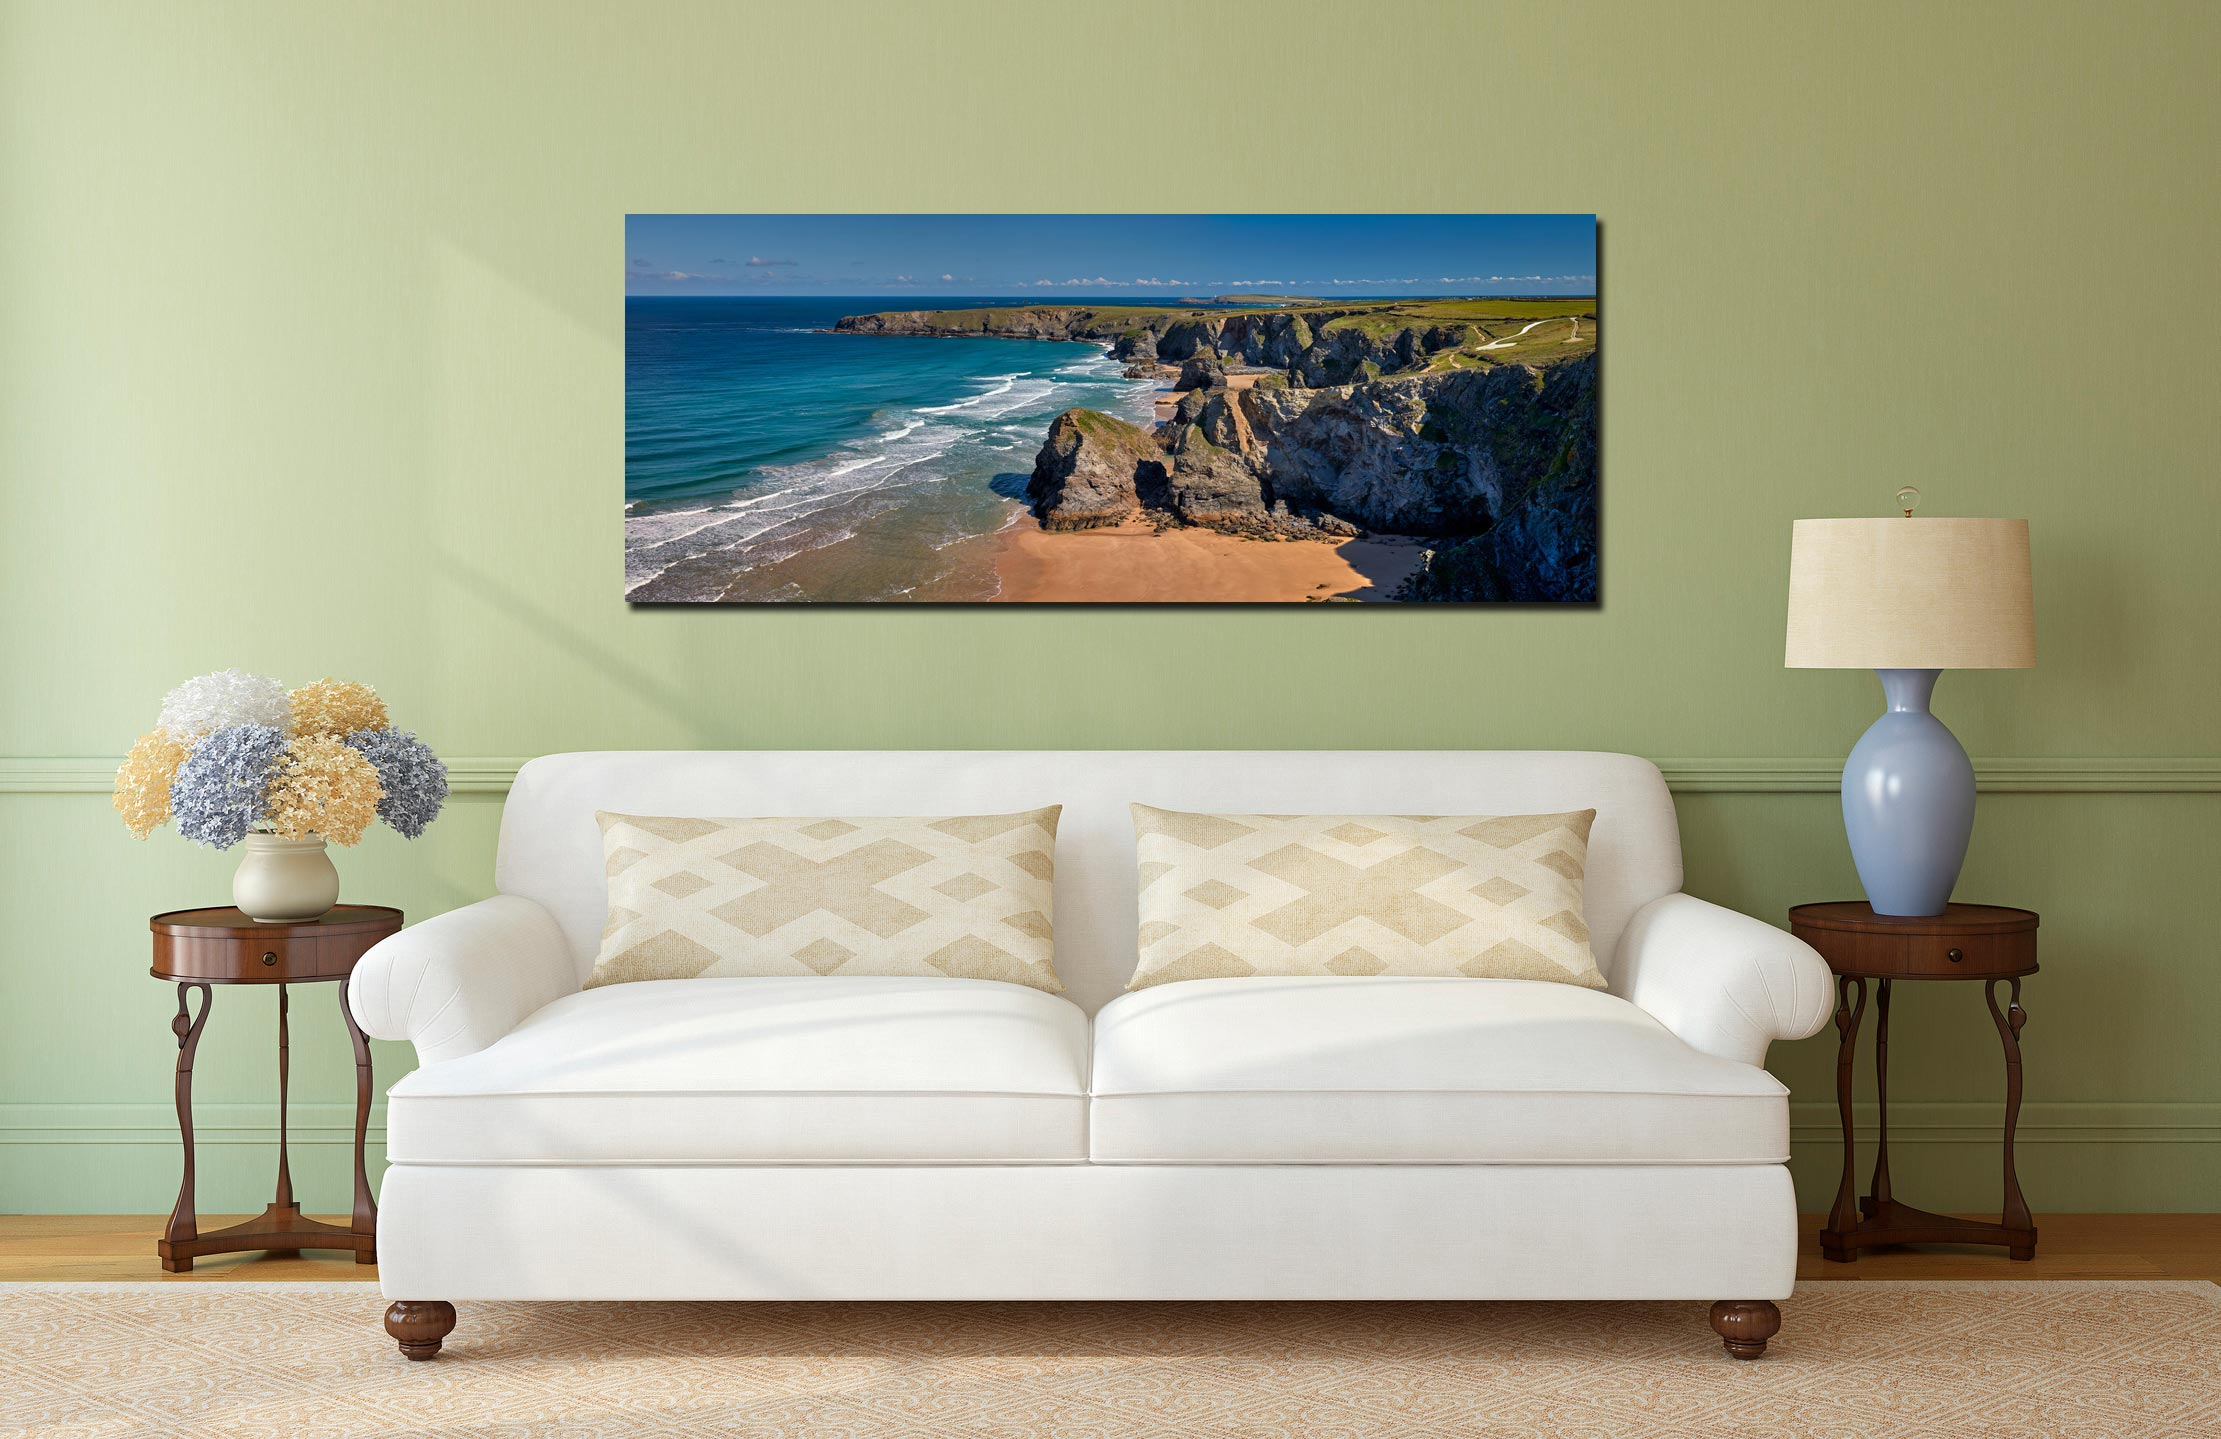 Cliffs and rock stacks at Bedruthan Steps in Cornwall - Print Aluminium Backing With Acrylic Glazing on Wall